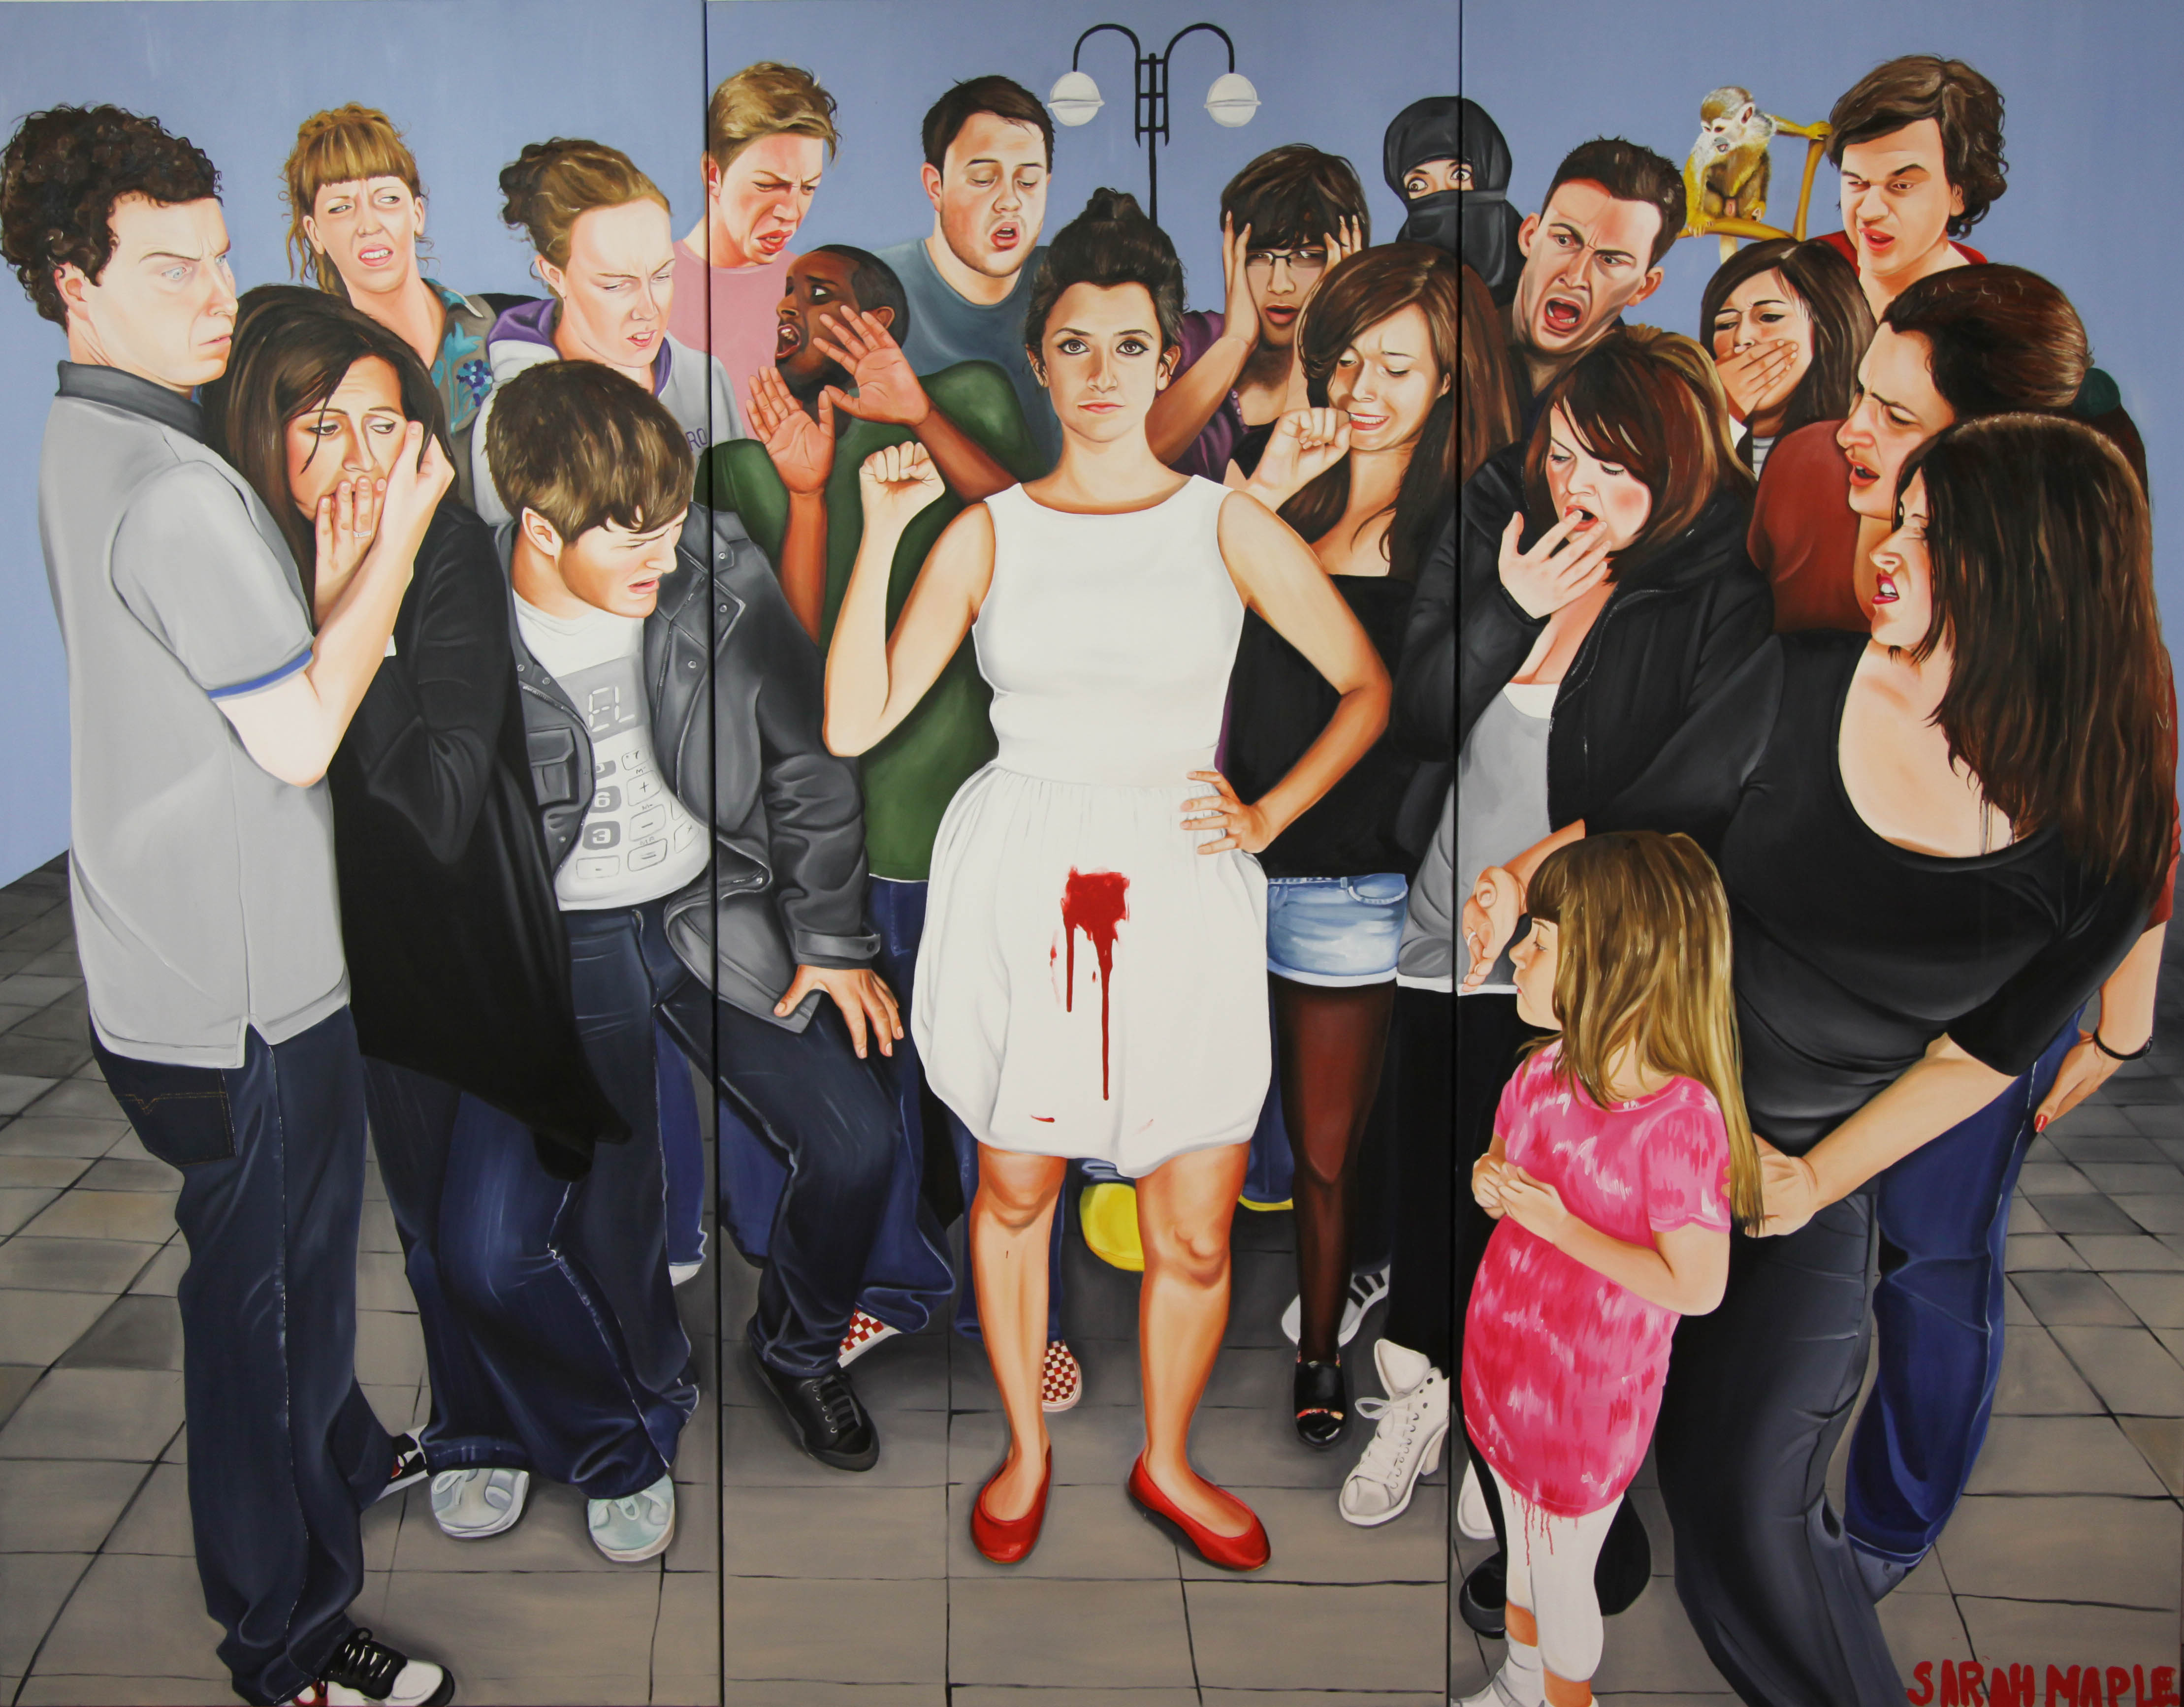 Sarah Maple, Menstruate with Pride, 2010-11. Courtesy the artist